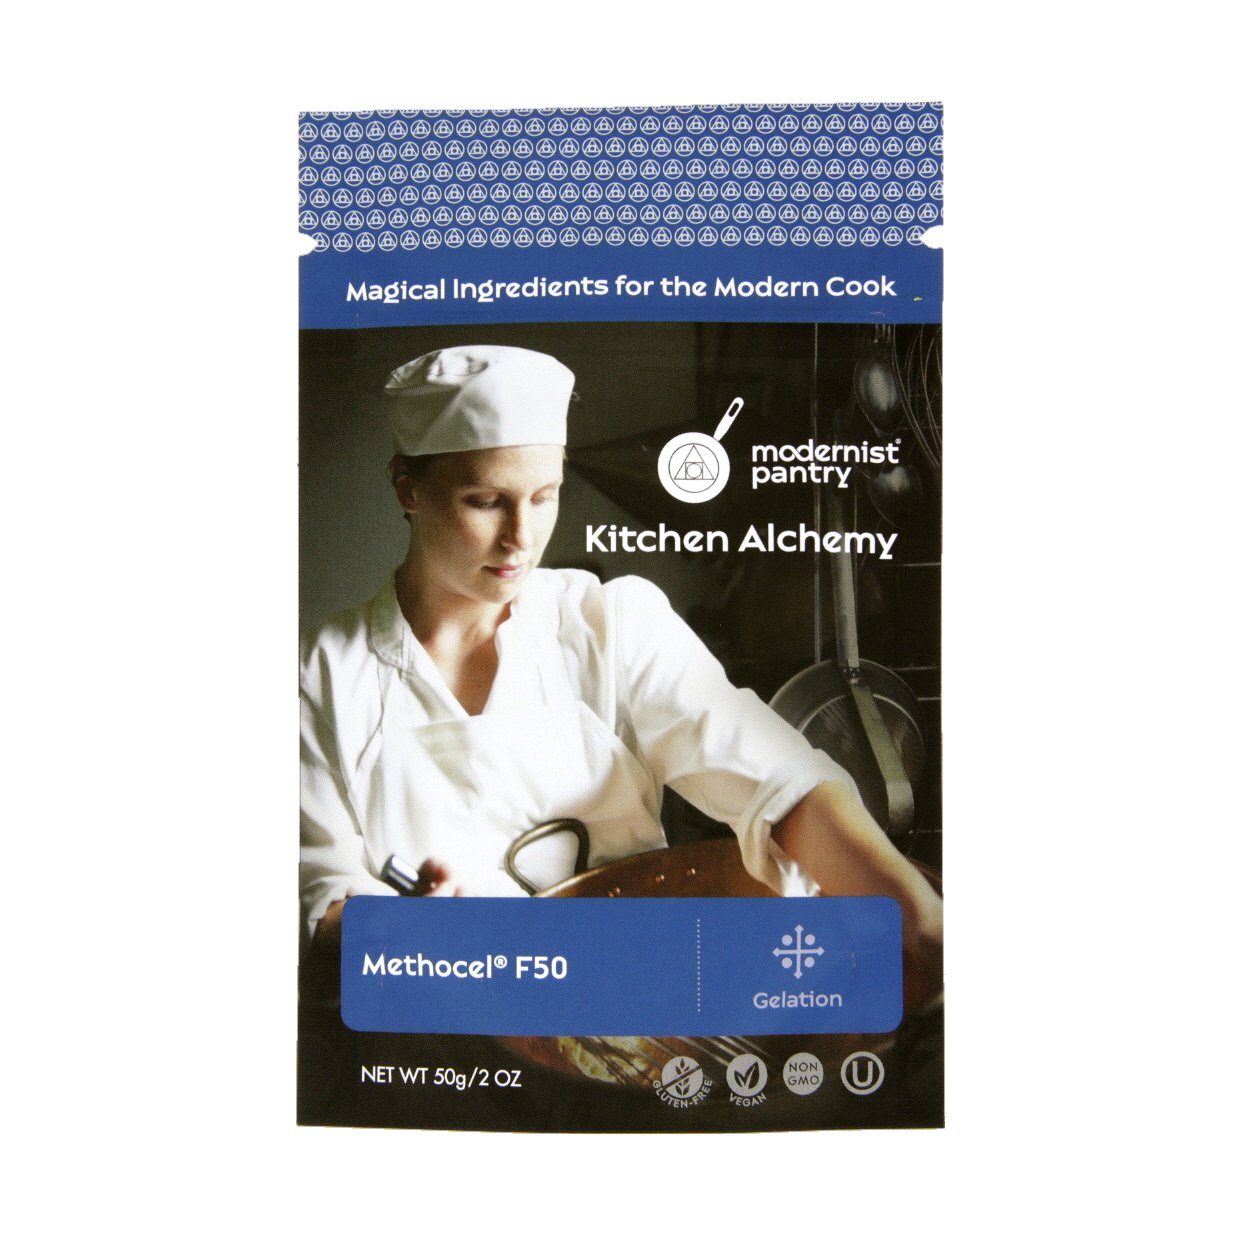 Hydroxypropyl Methylcellulose - Methocel F50 (Molecular Gastronomy) ⊘ Non-GMO ☮ Vegan ✡ OU Kosher Certified - 50g/2oz